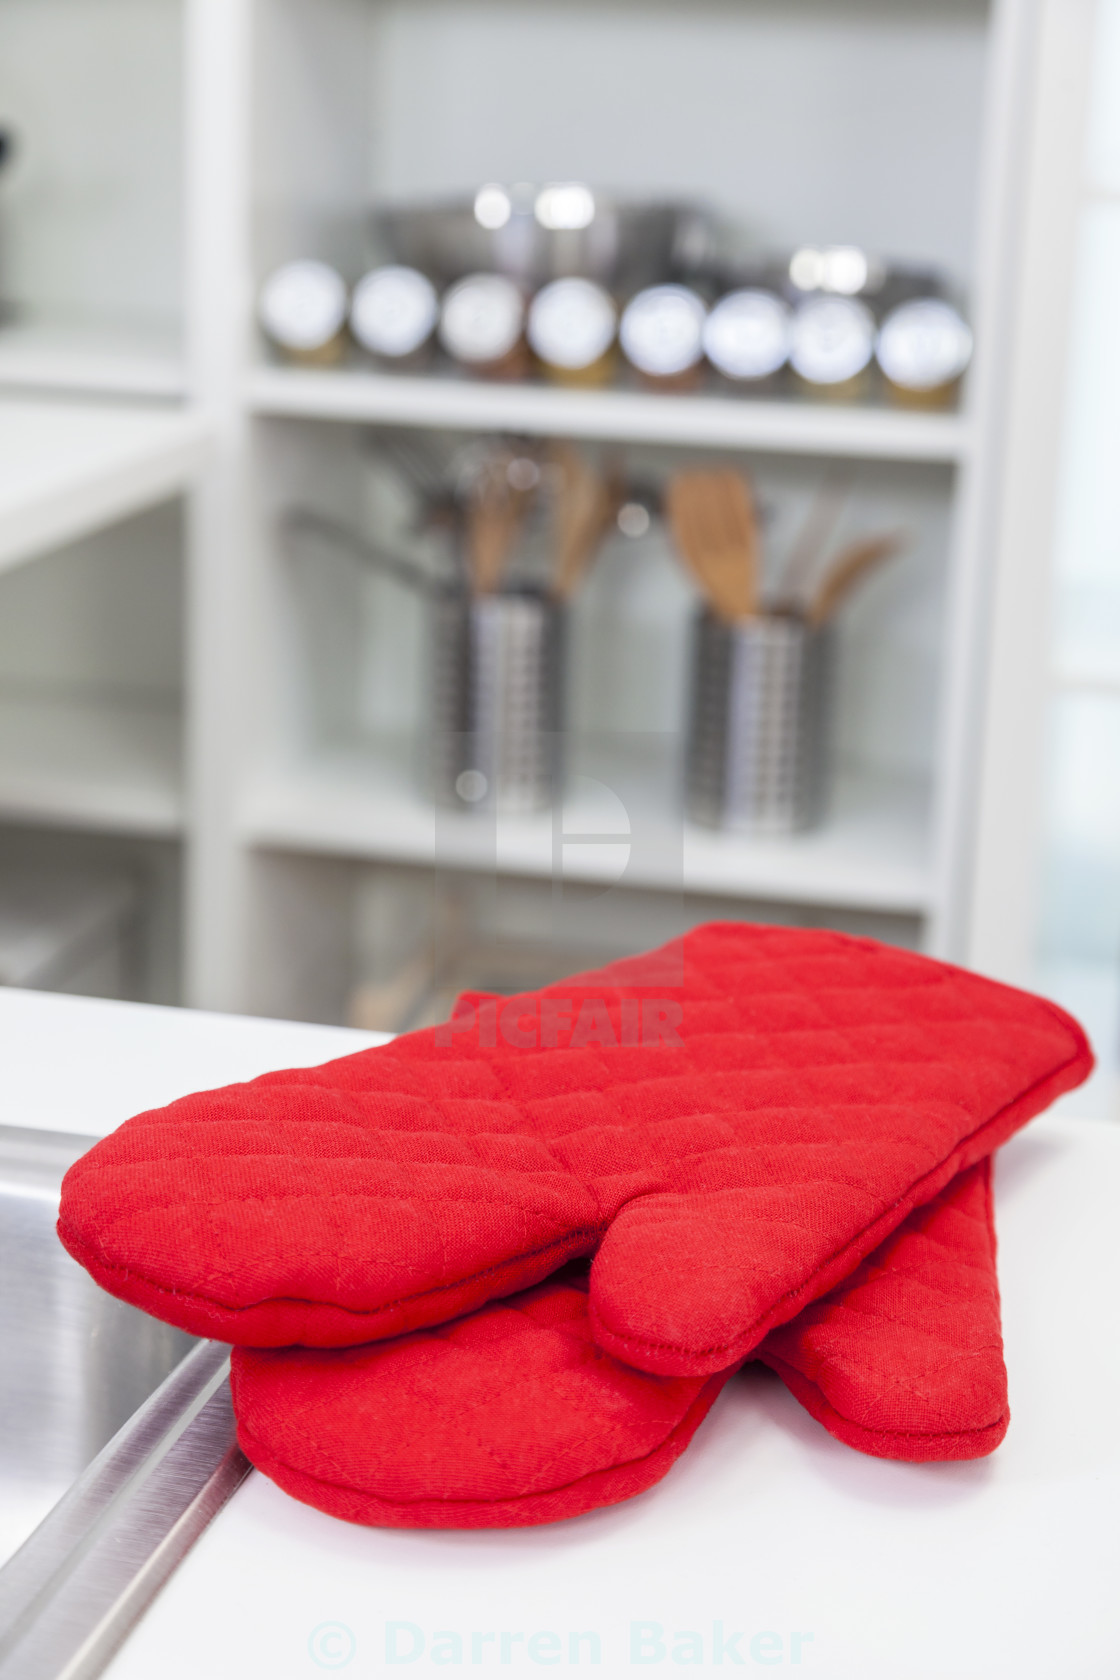 """Red Oven Gloves Mittens in a Modern Kitchen"" stock image"